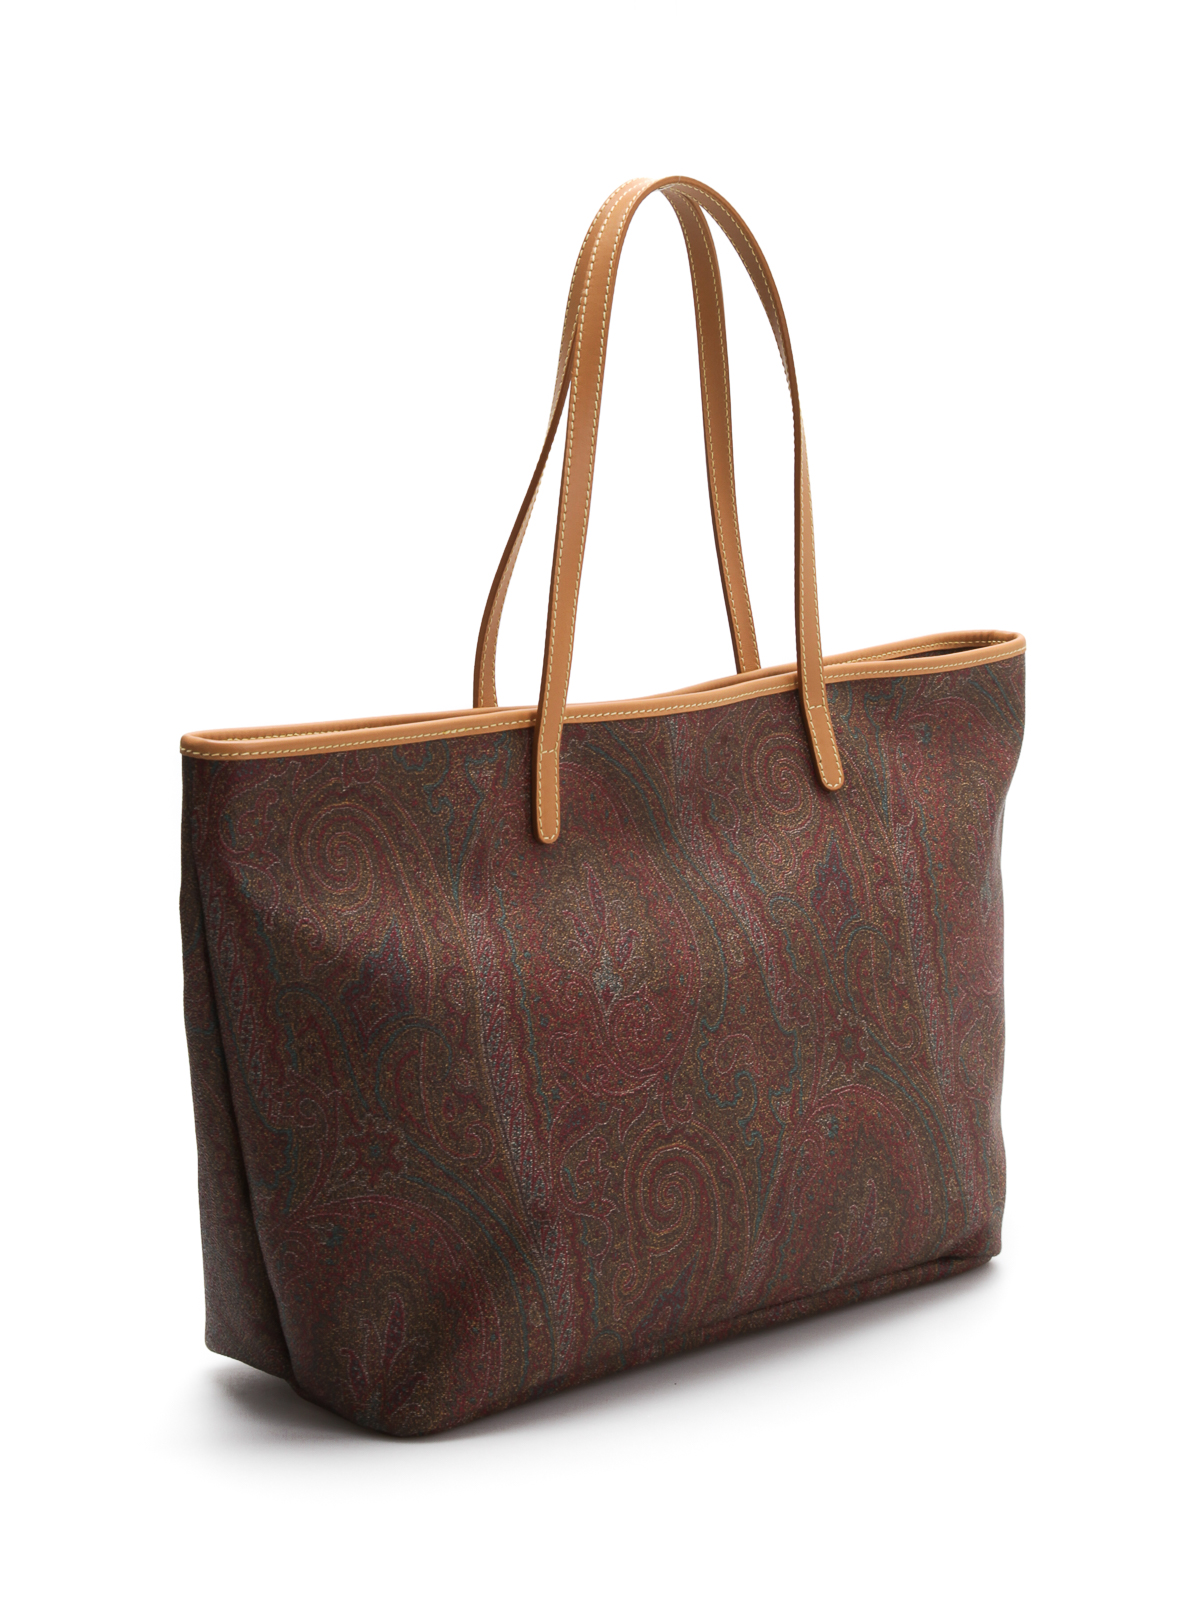 Paisley medium shopper bag by Etro - totes bags | iKRIX